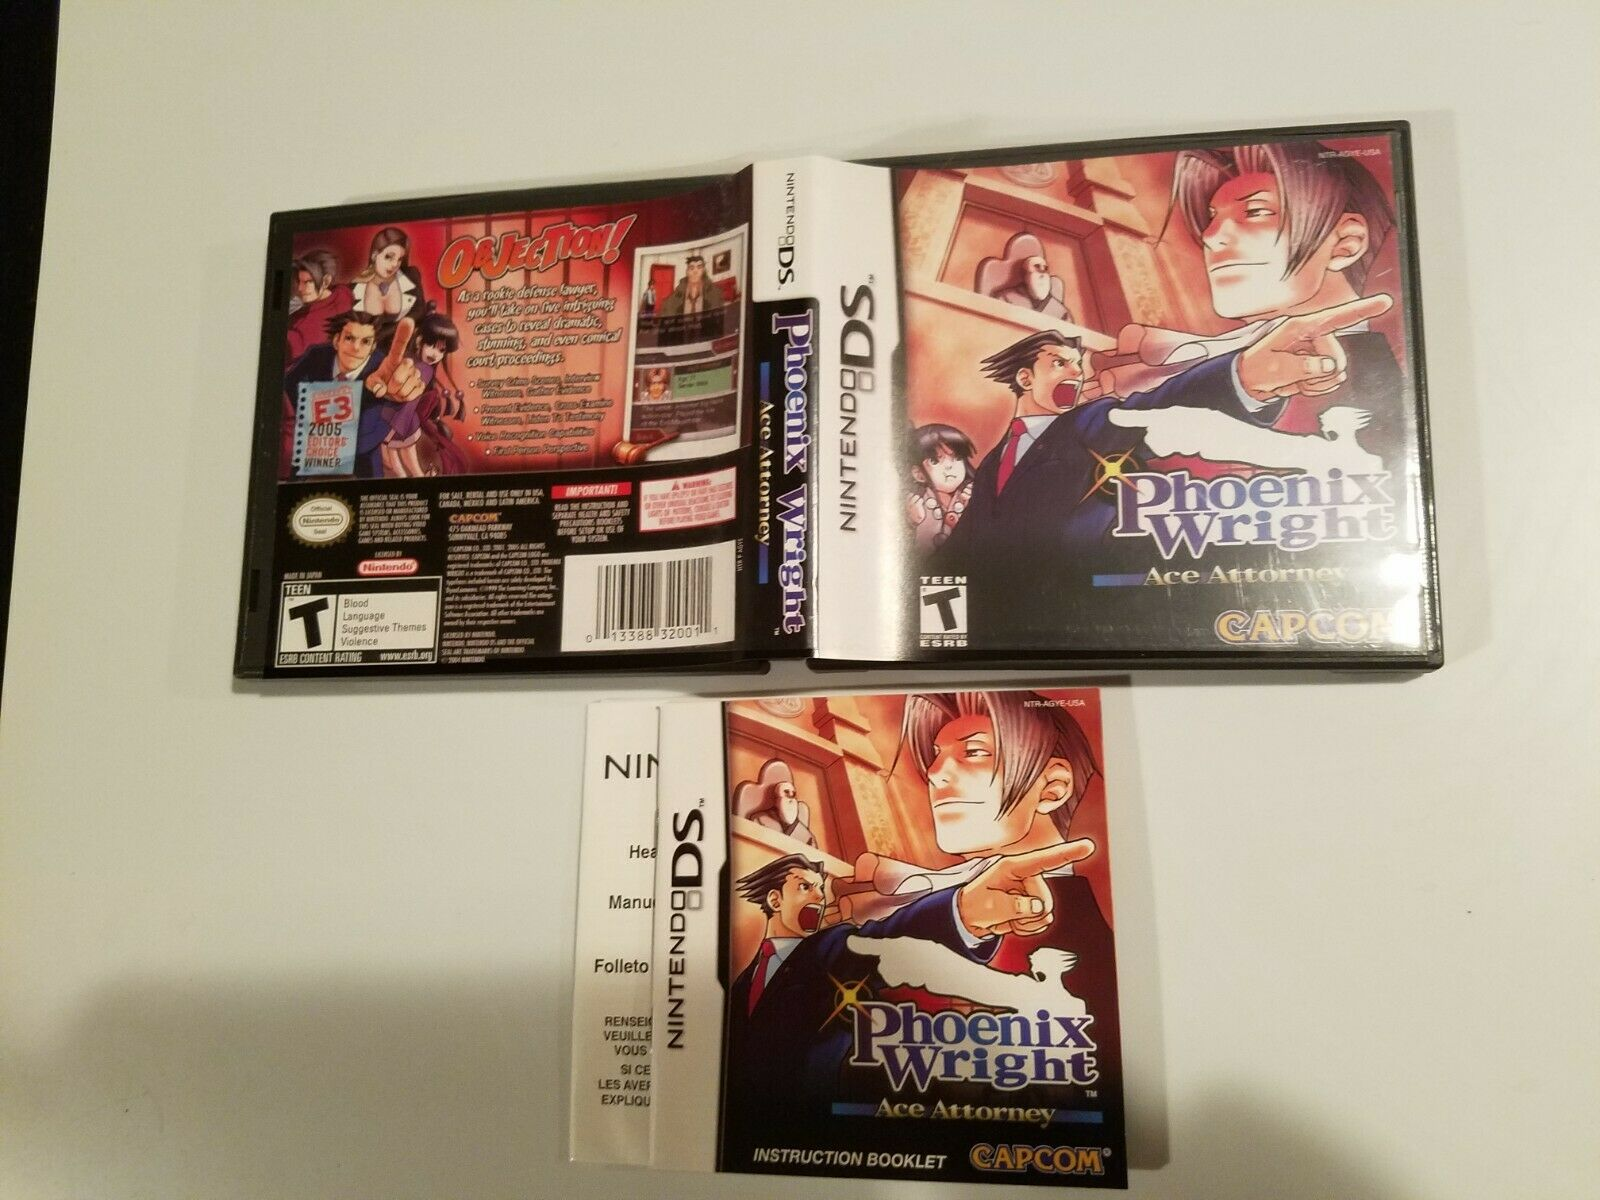 Phoenix Wright: Ace Attorney (Nintendo DS, 2005) Case Artwork and Manual 1